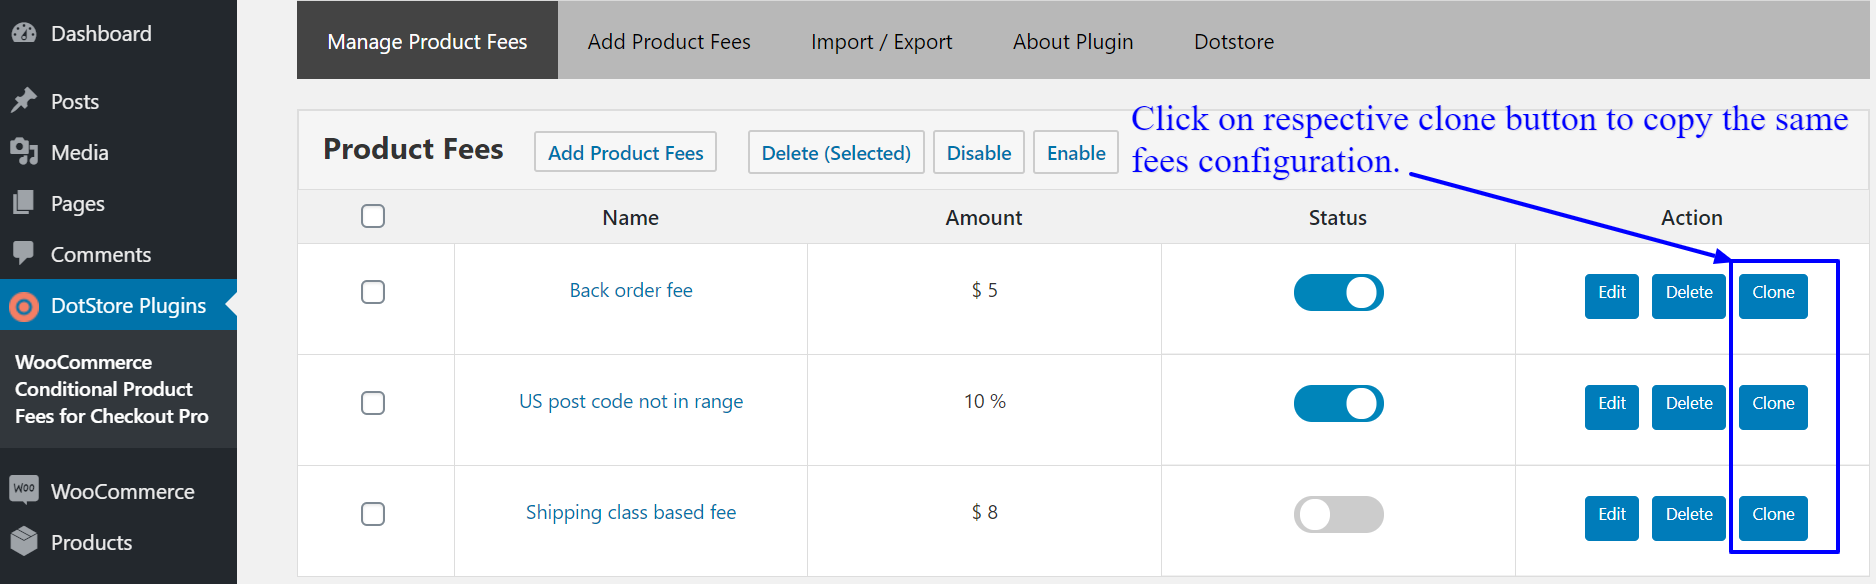 How to clone conditional fee with same settings